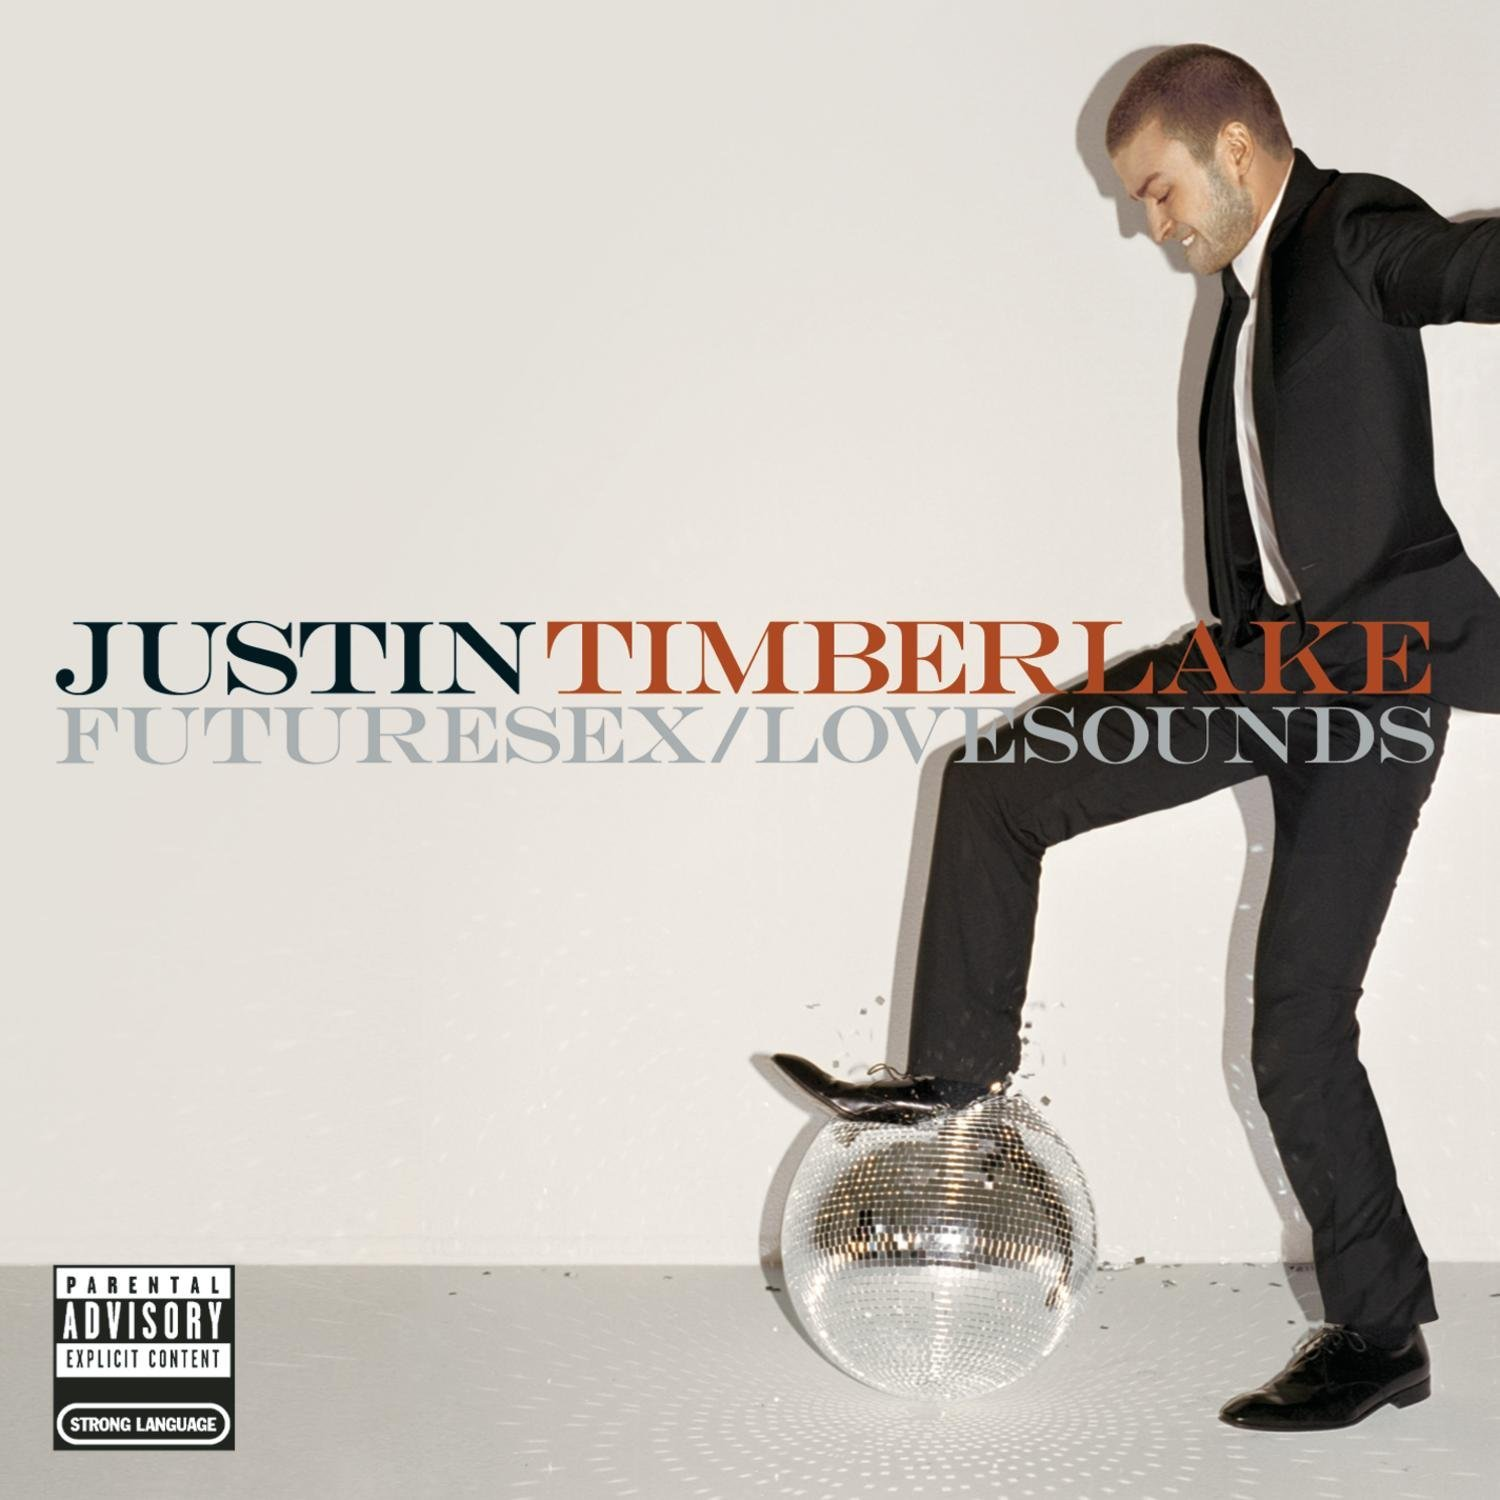 Justin Timberlake, FutureSex/LoveSounds